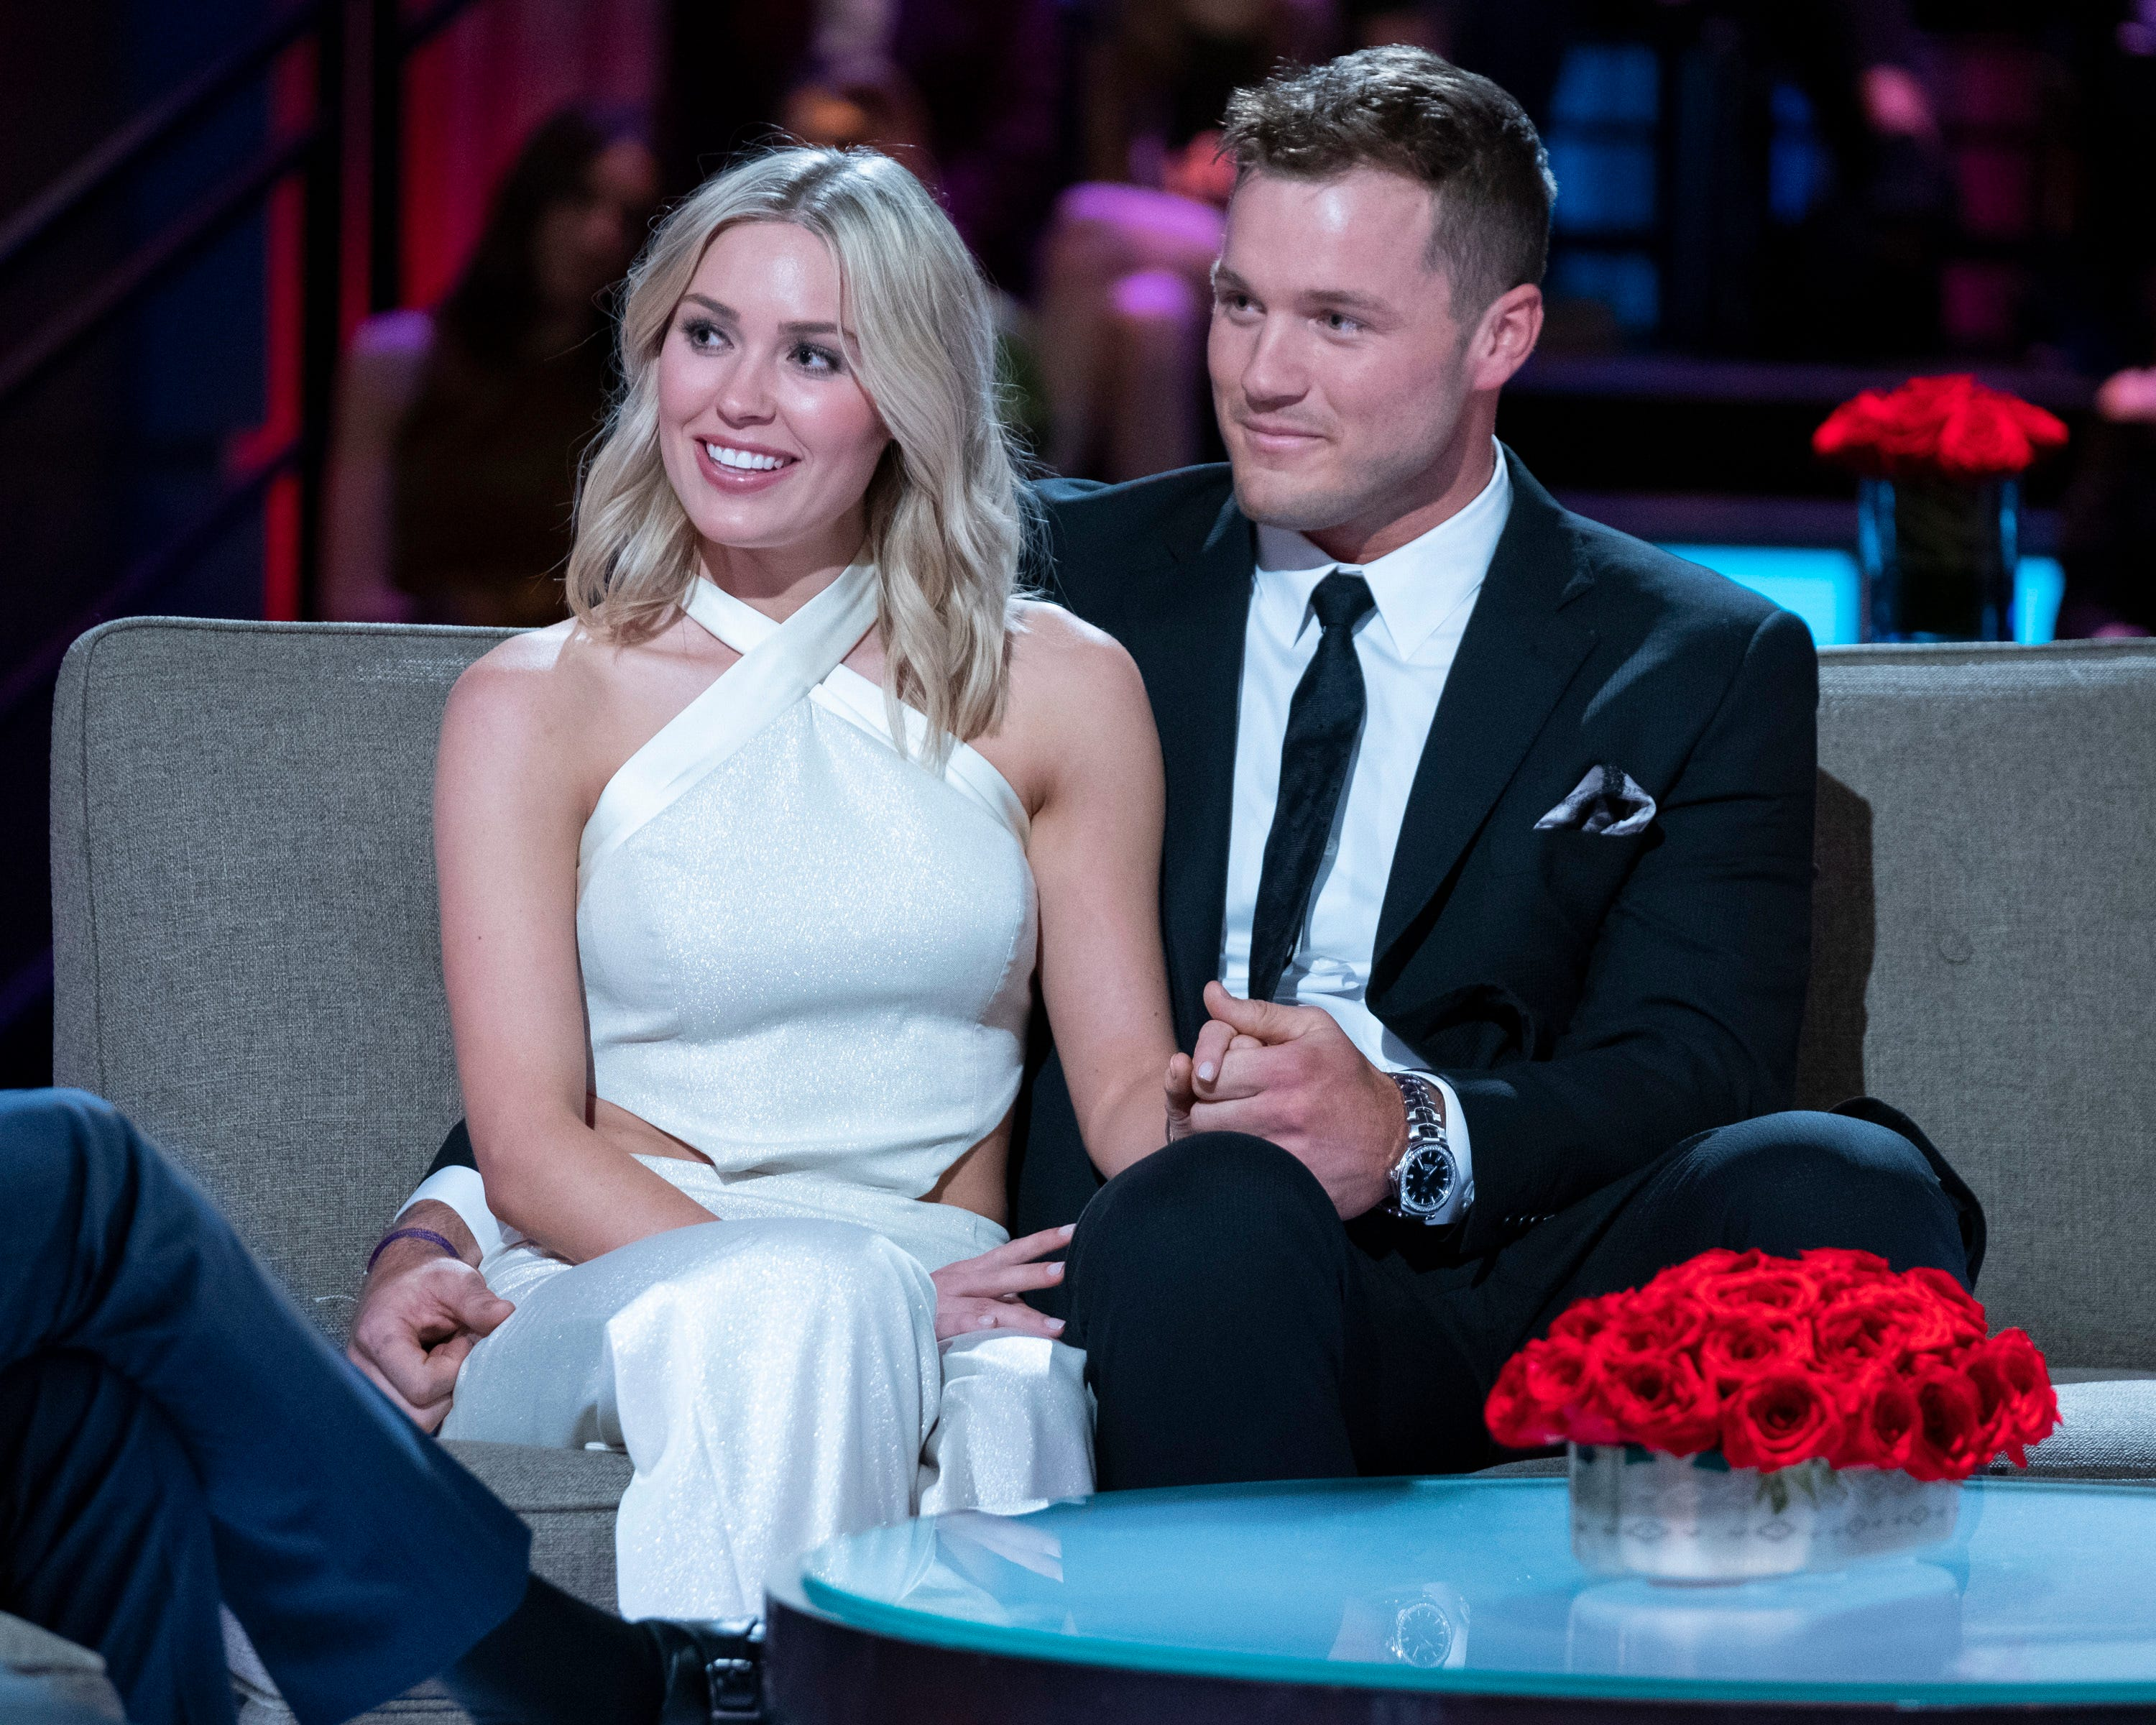 'Bachelor' couple Colton and Cassie sport matching jerseys: 'Future Mrs.' and 'Underwood'